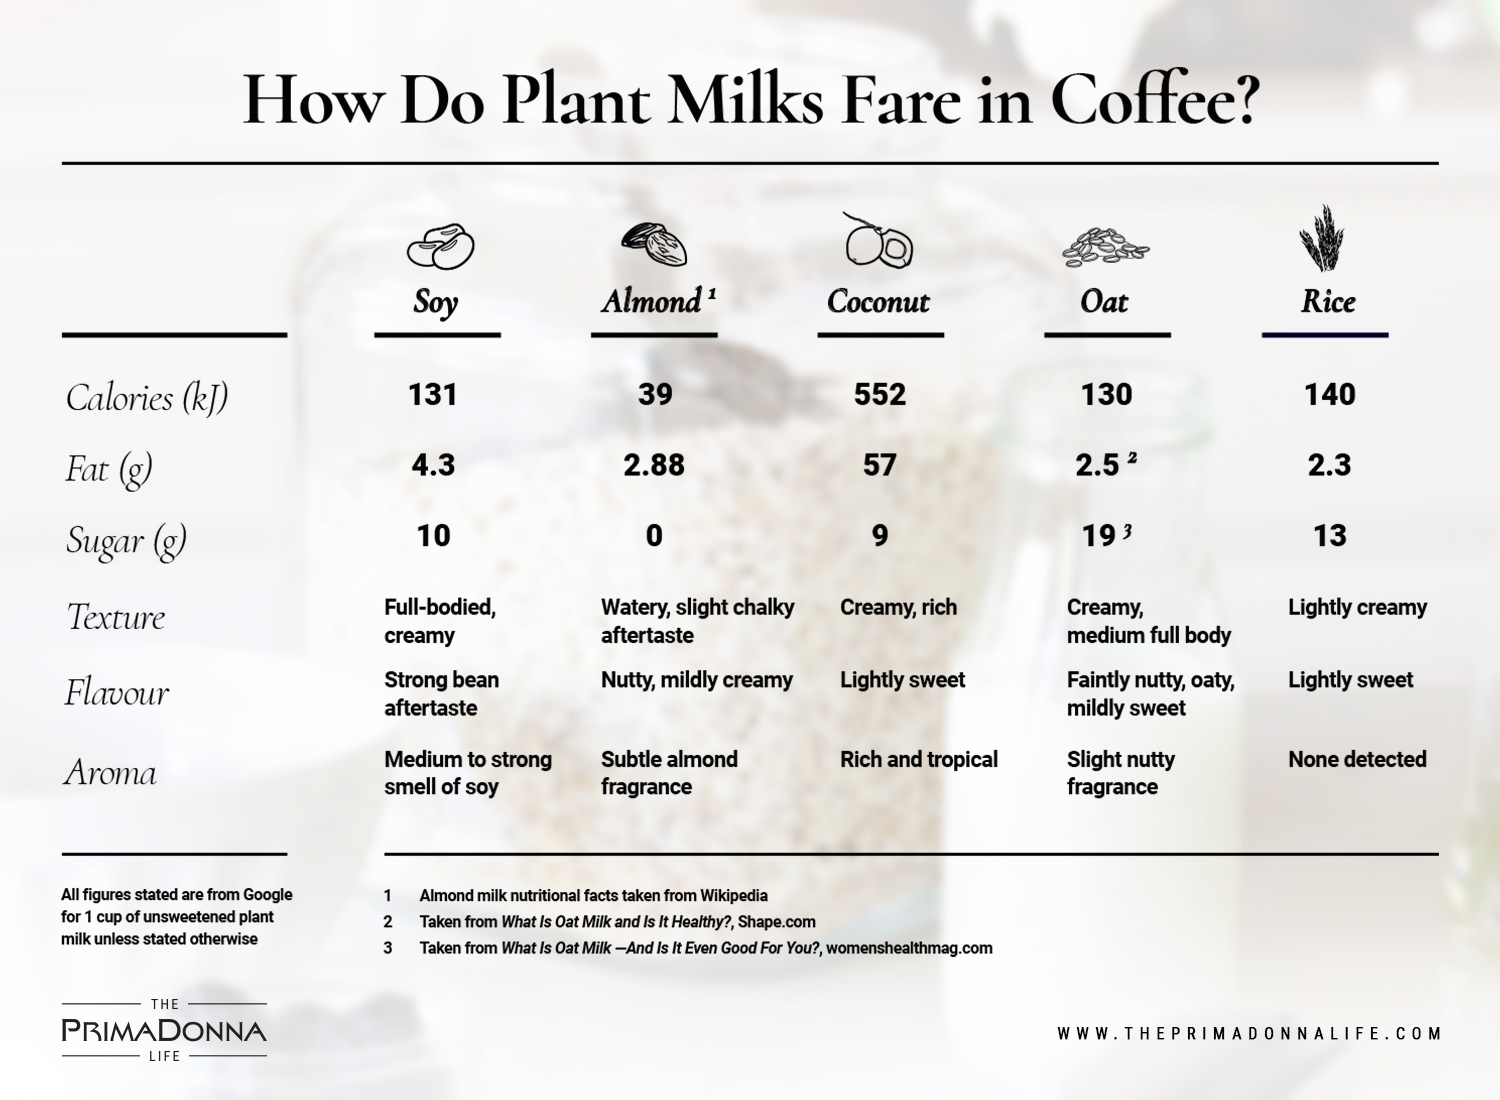 Plant-based milk vary greatly in nutritional content, texture, flavour and aroma. Be sure to educate yourself before choosing one